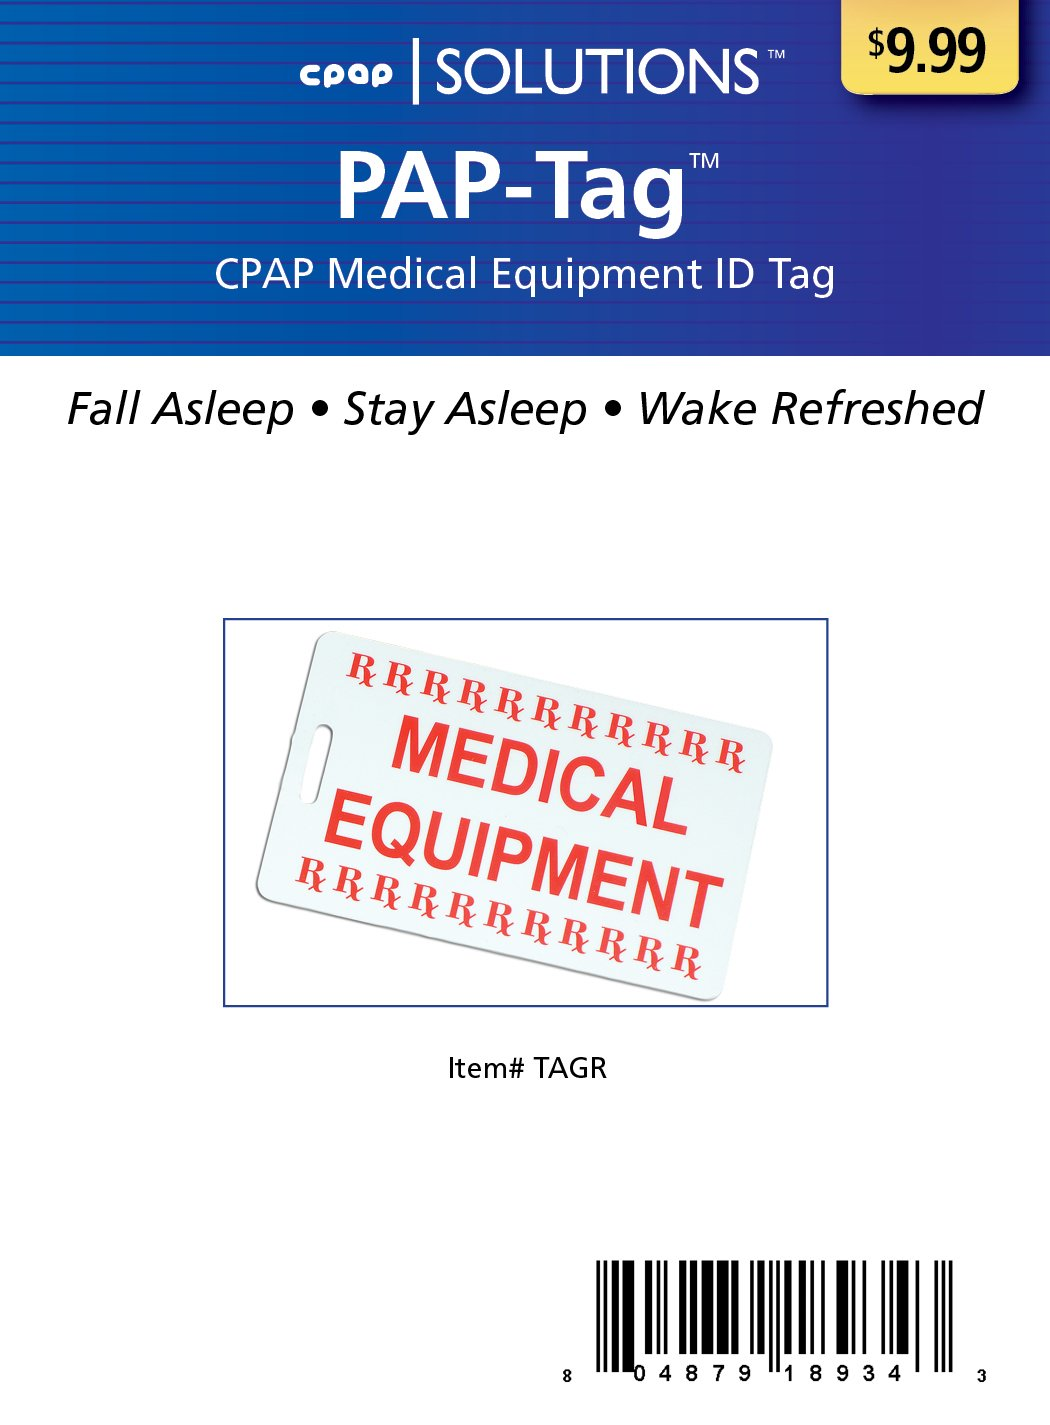 photo about Medical Equipment Luggage Tag Printable referred to as CPAP Health care Applications Baggage Tag by way of Pur-Rest